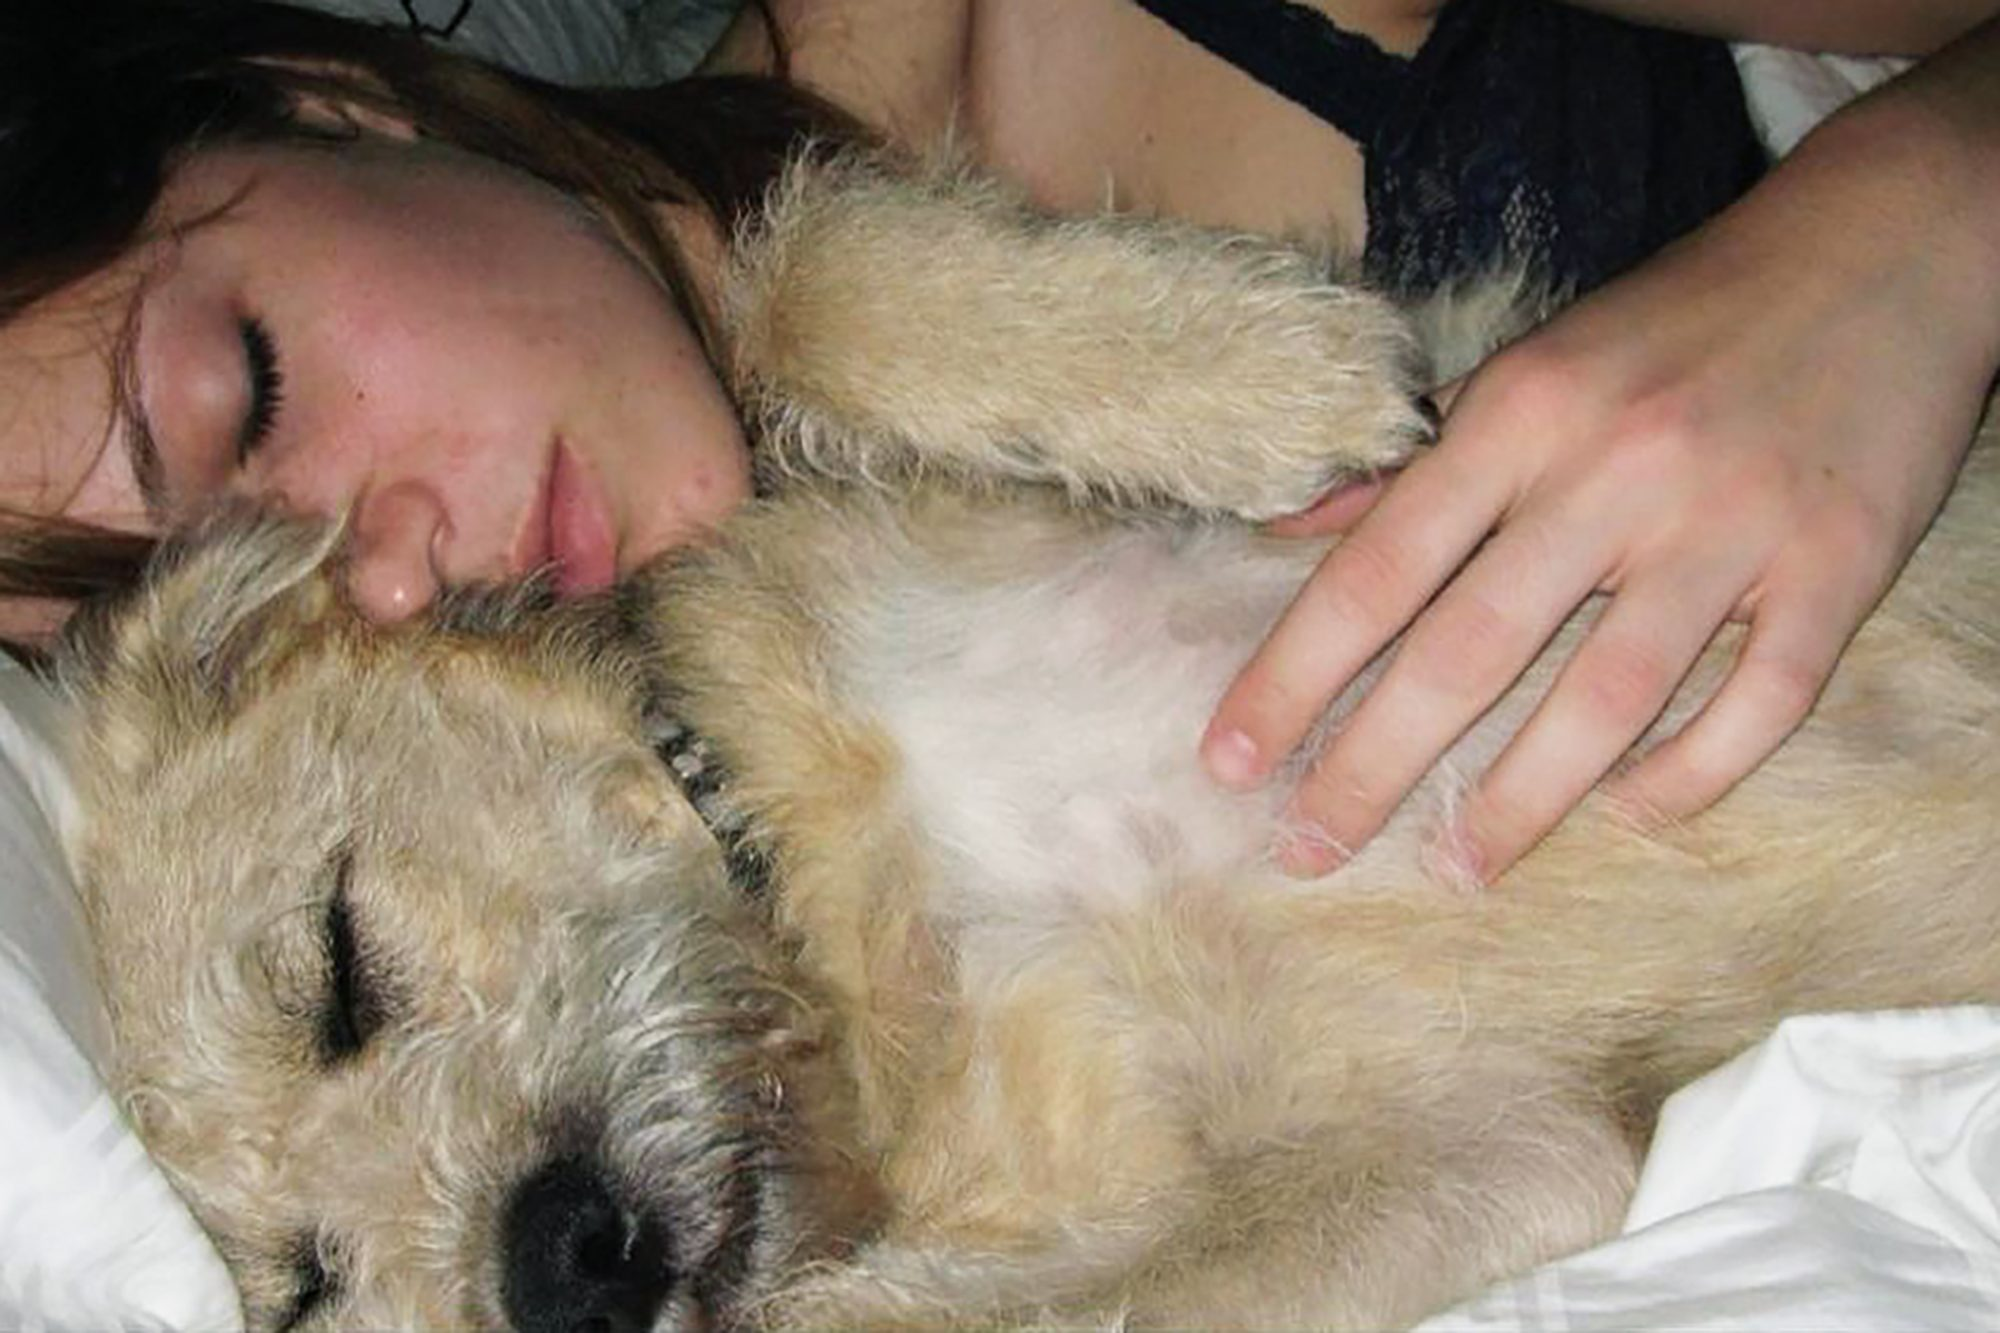 Mandy Moore asleep with her dog